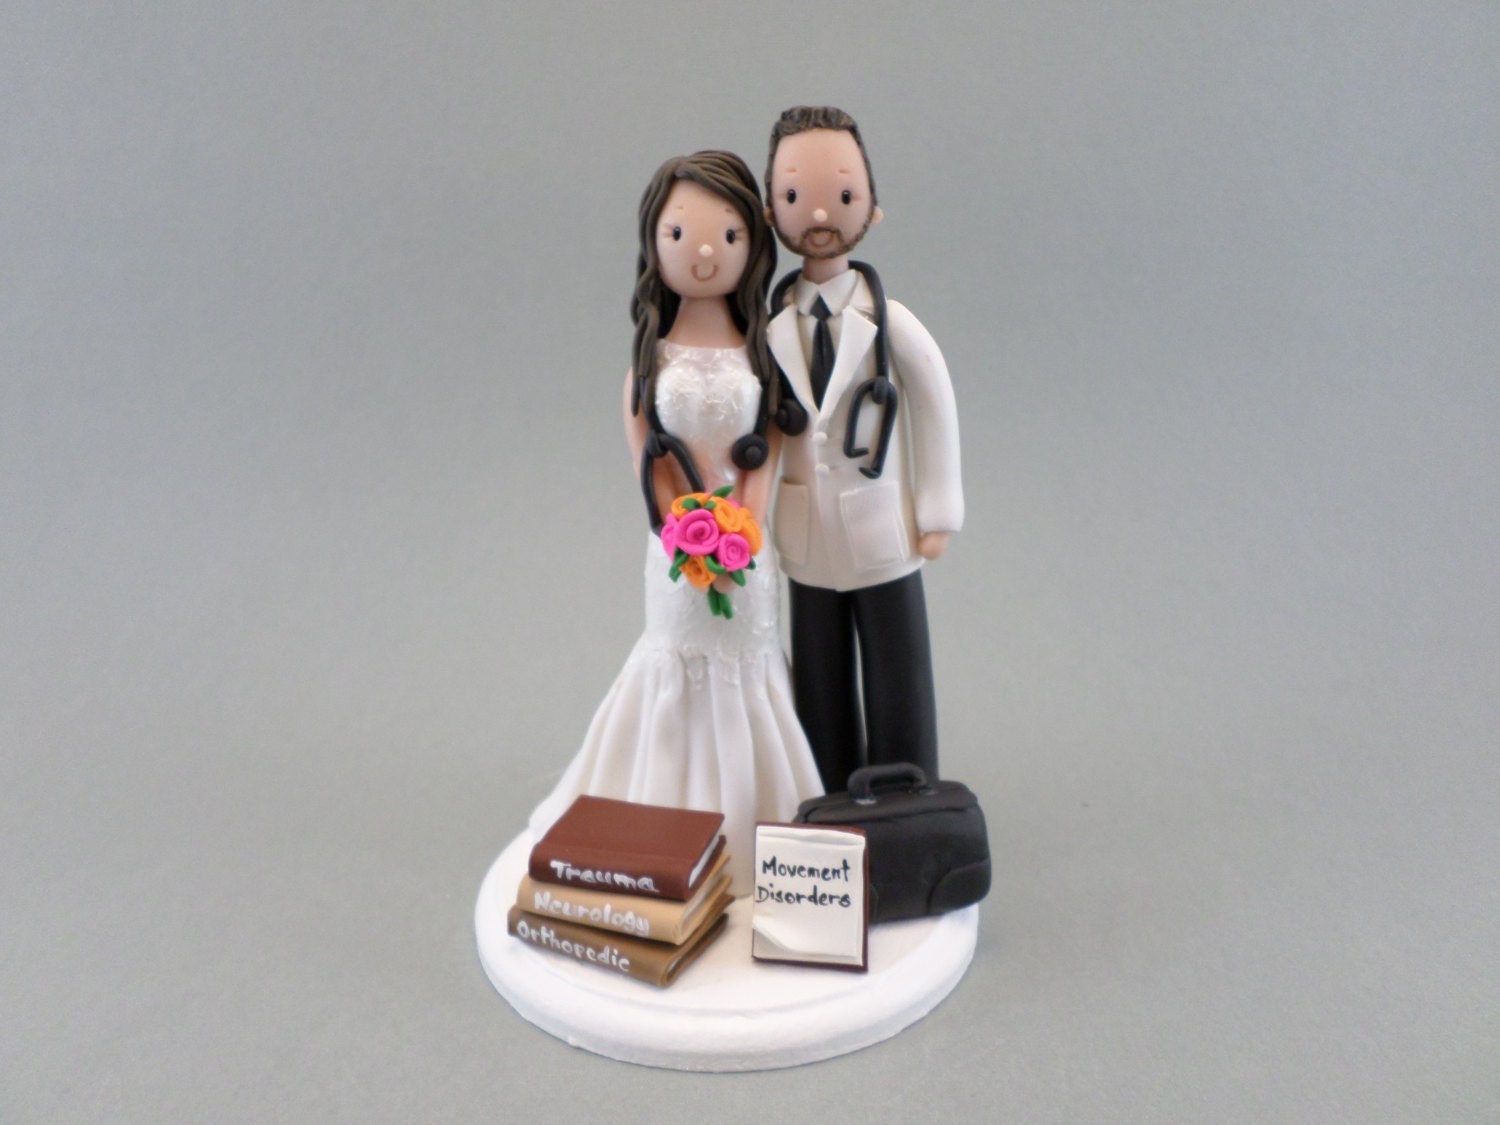 nurse wedding cake topper doctor amp personalized wedding cake topper 17950